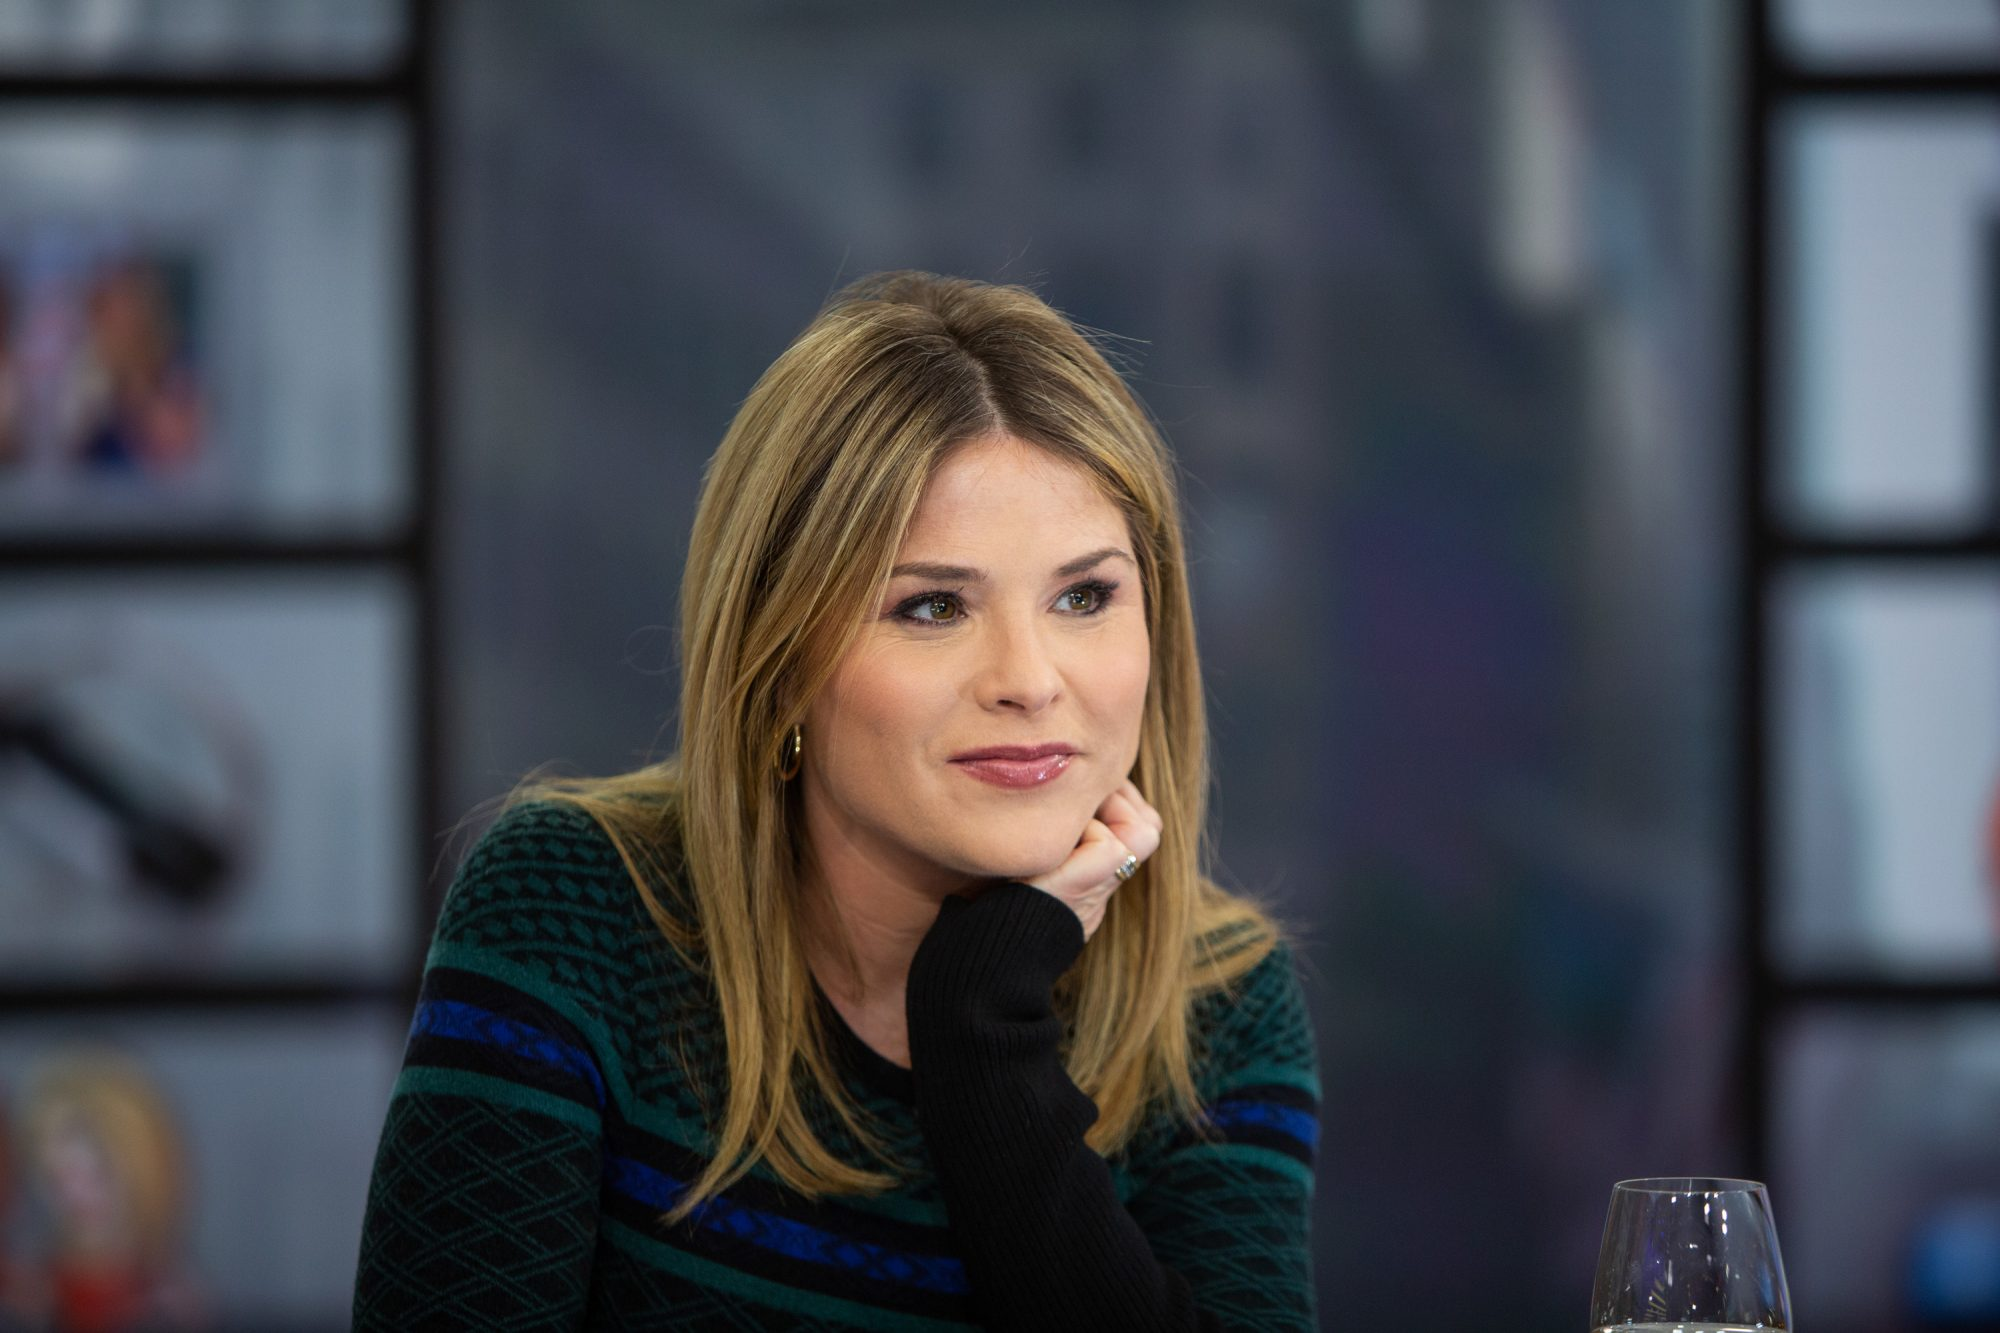 Jenna Bush Hager on 'TODAY' Show